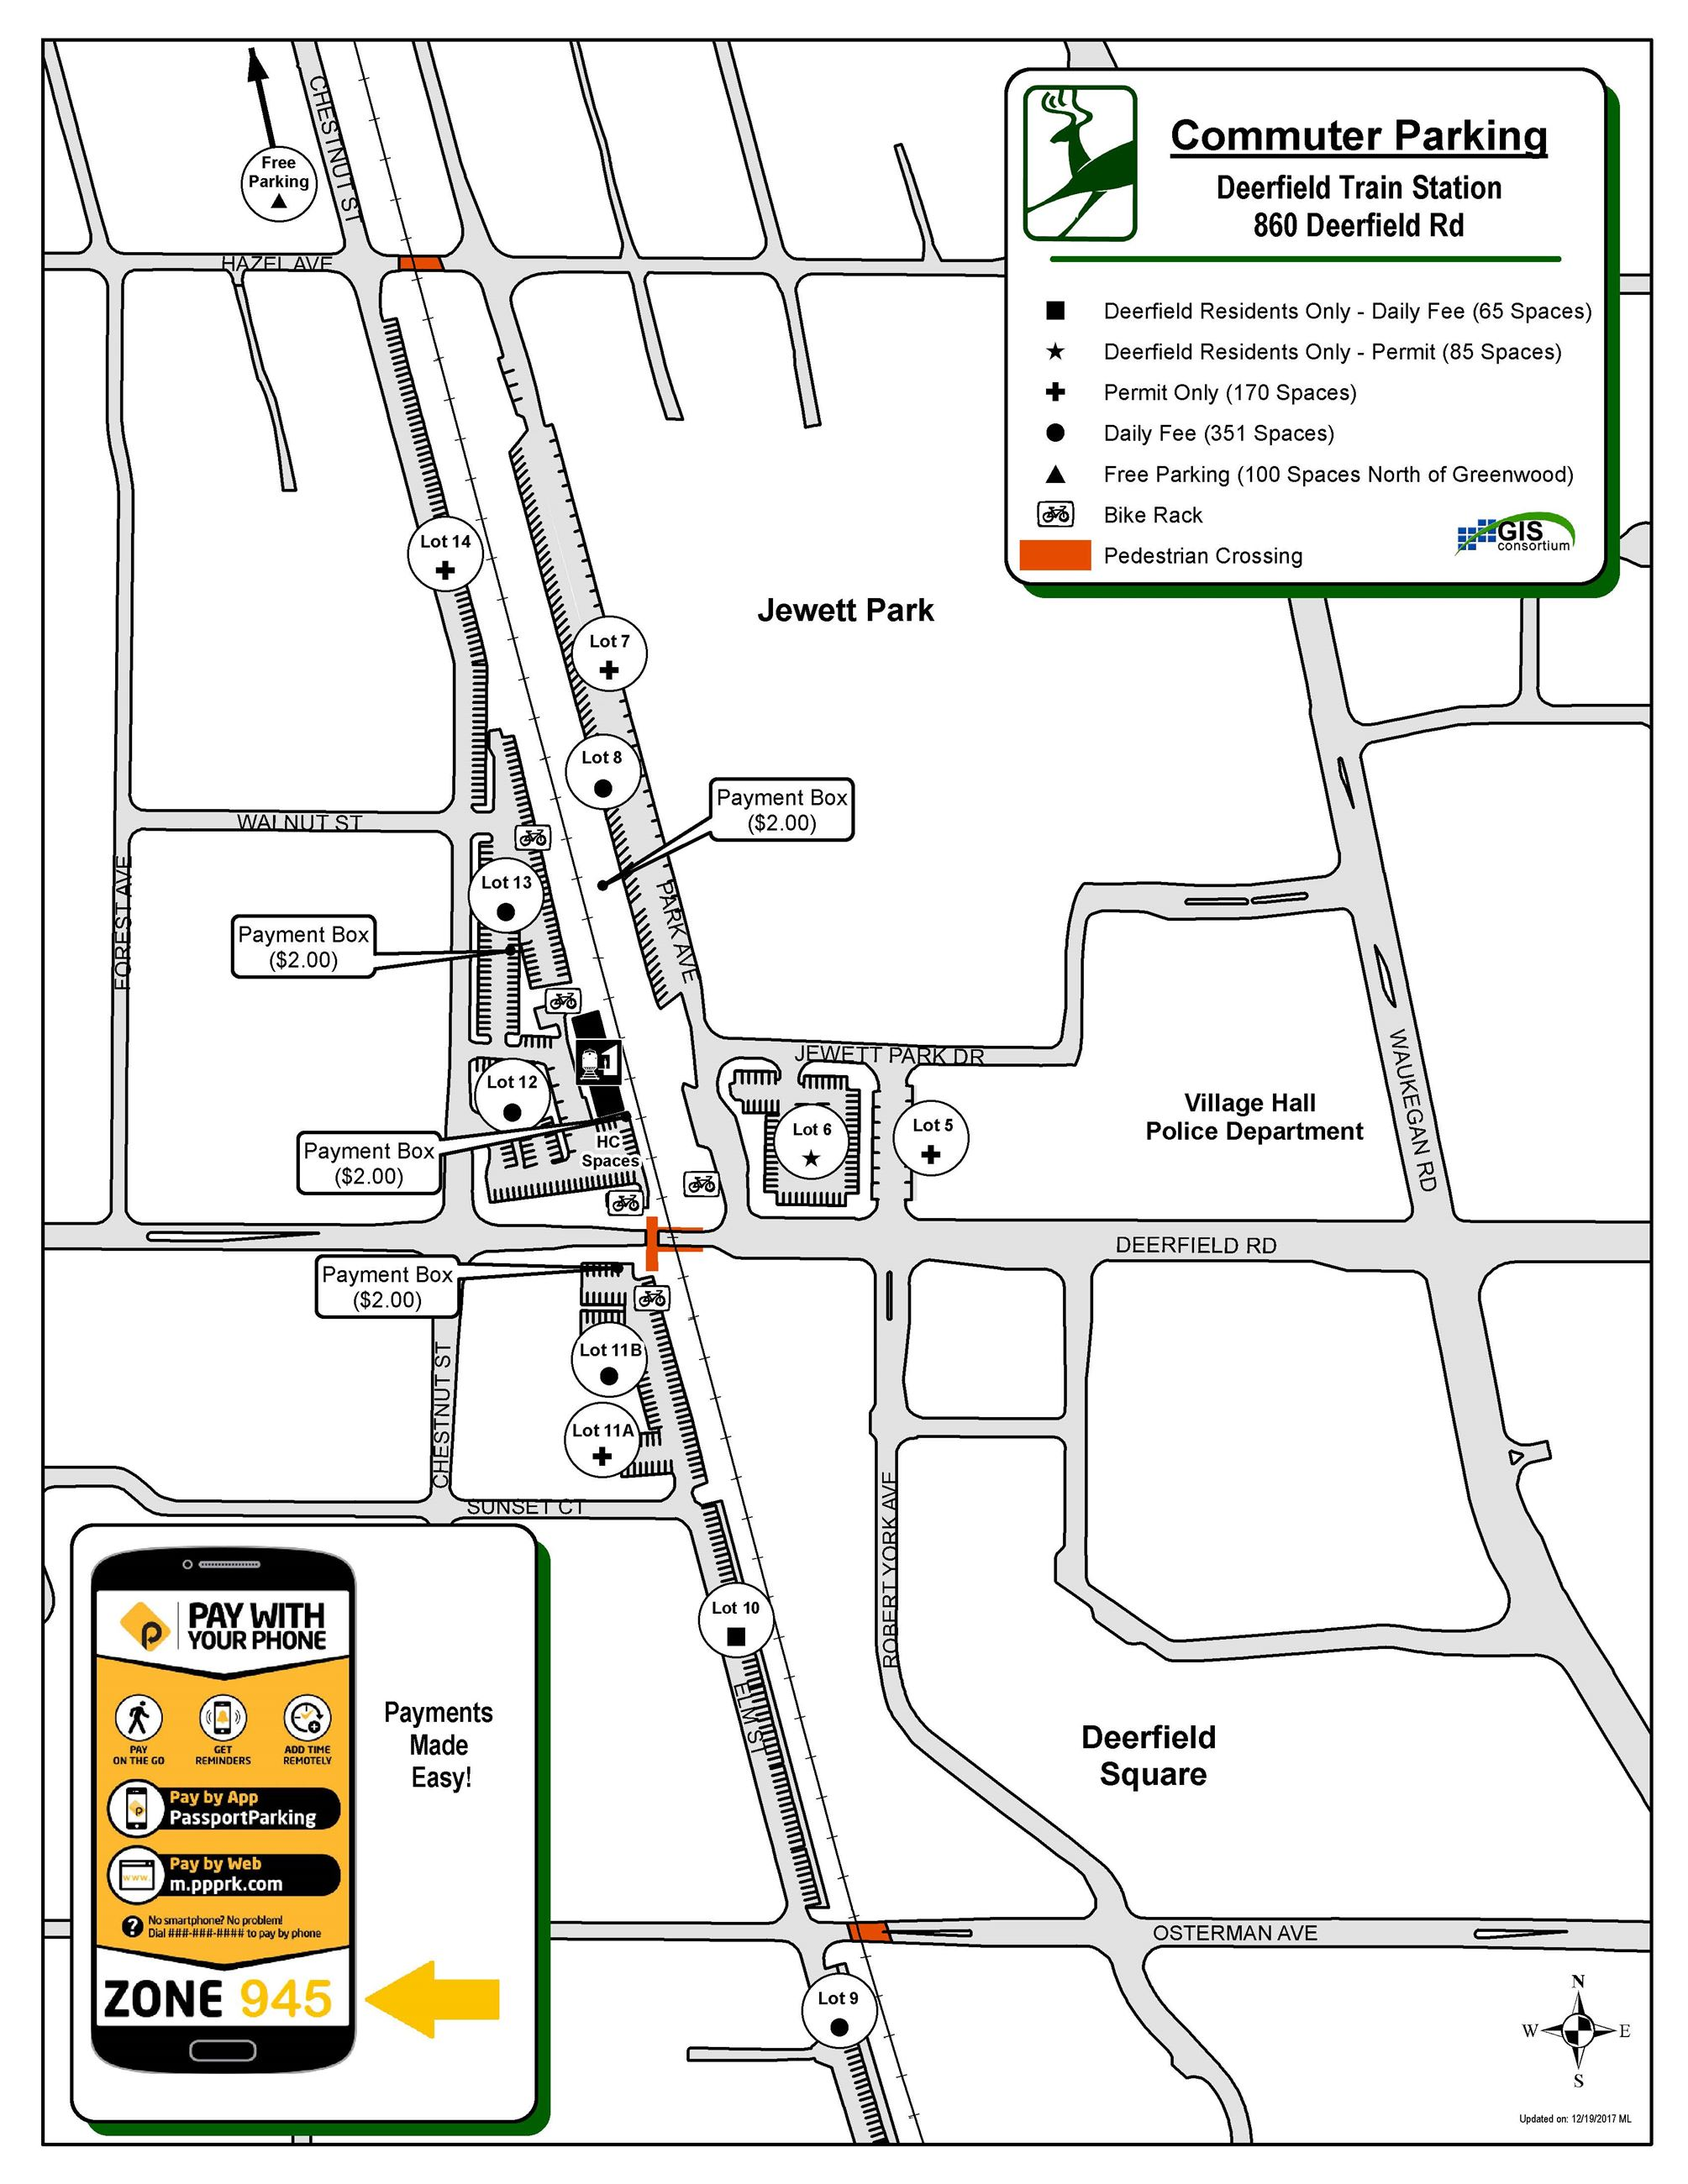 Commuter Parking Map